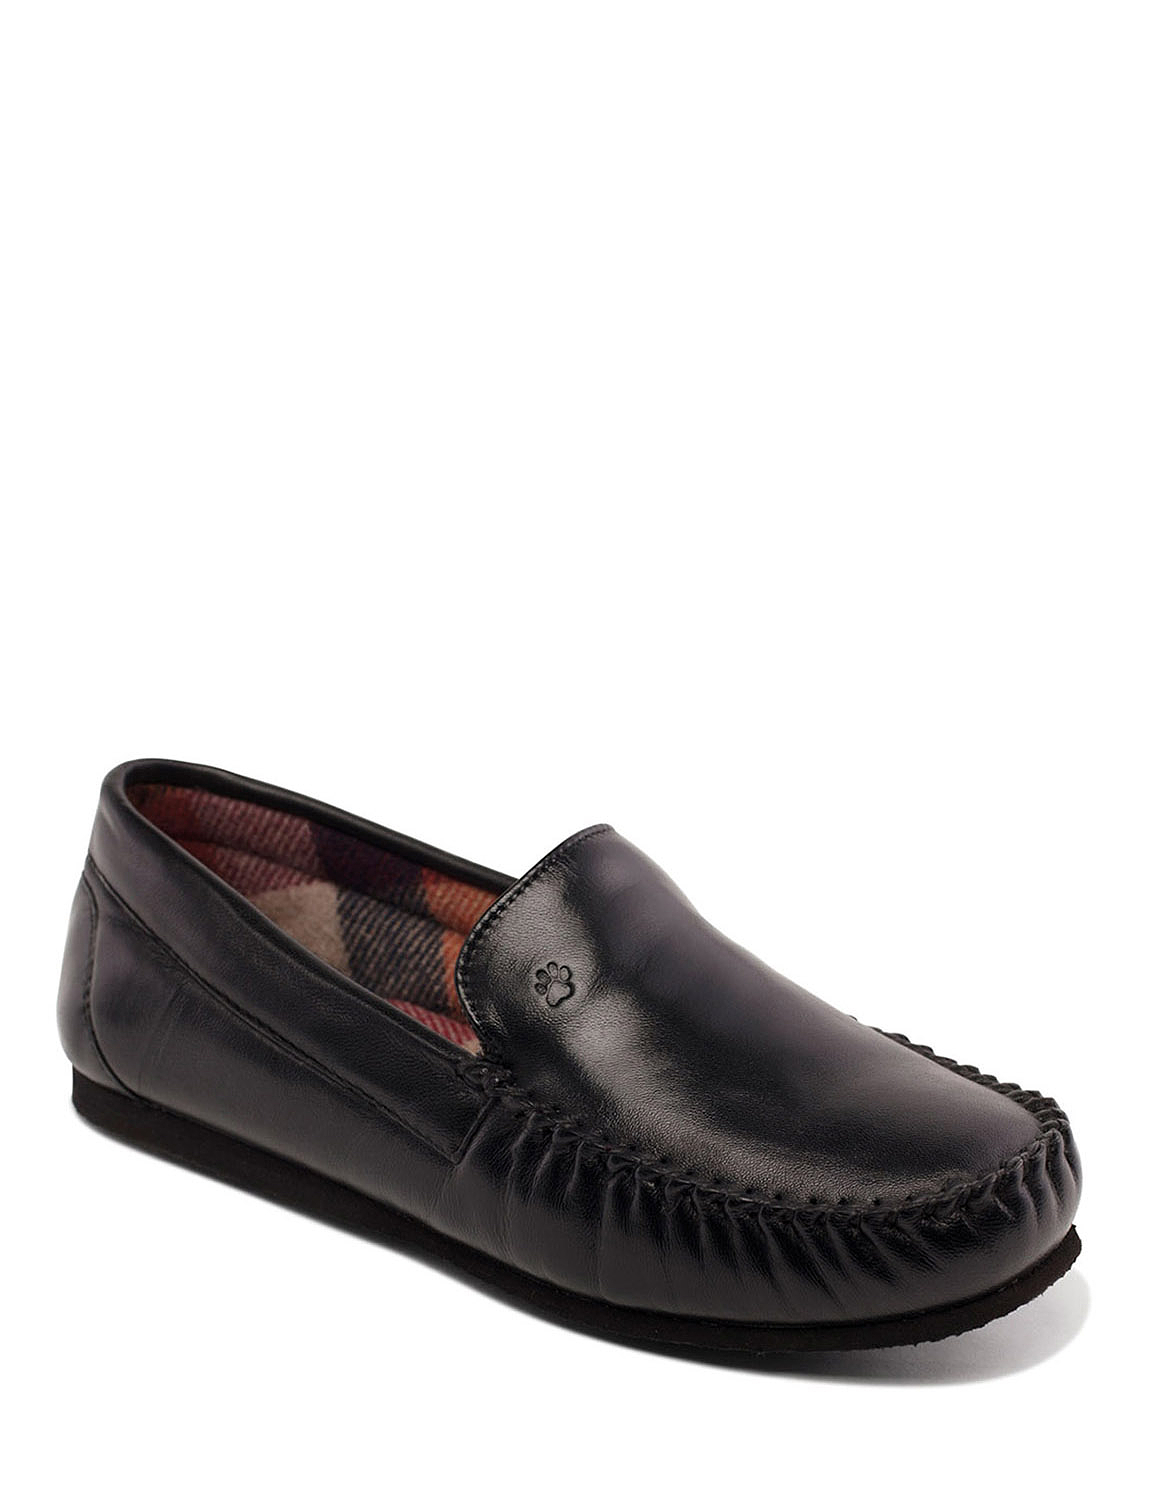 Padders Marino Leather G Fit Slipper With Memory Foam - Black